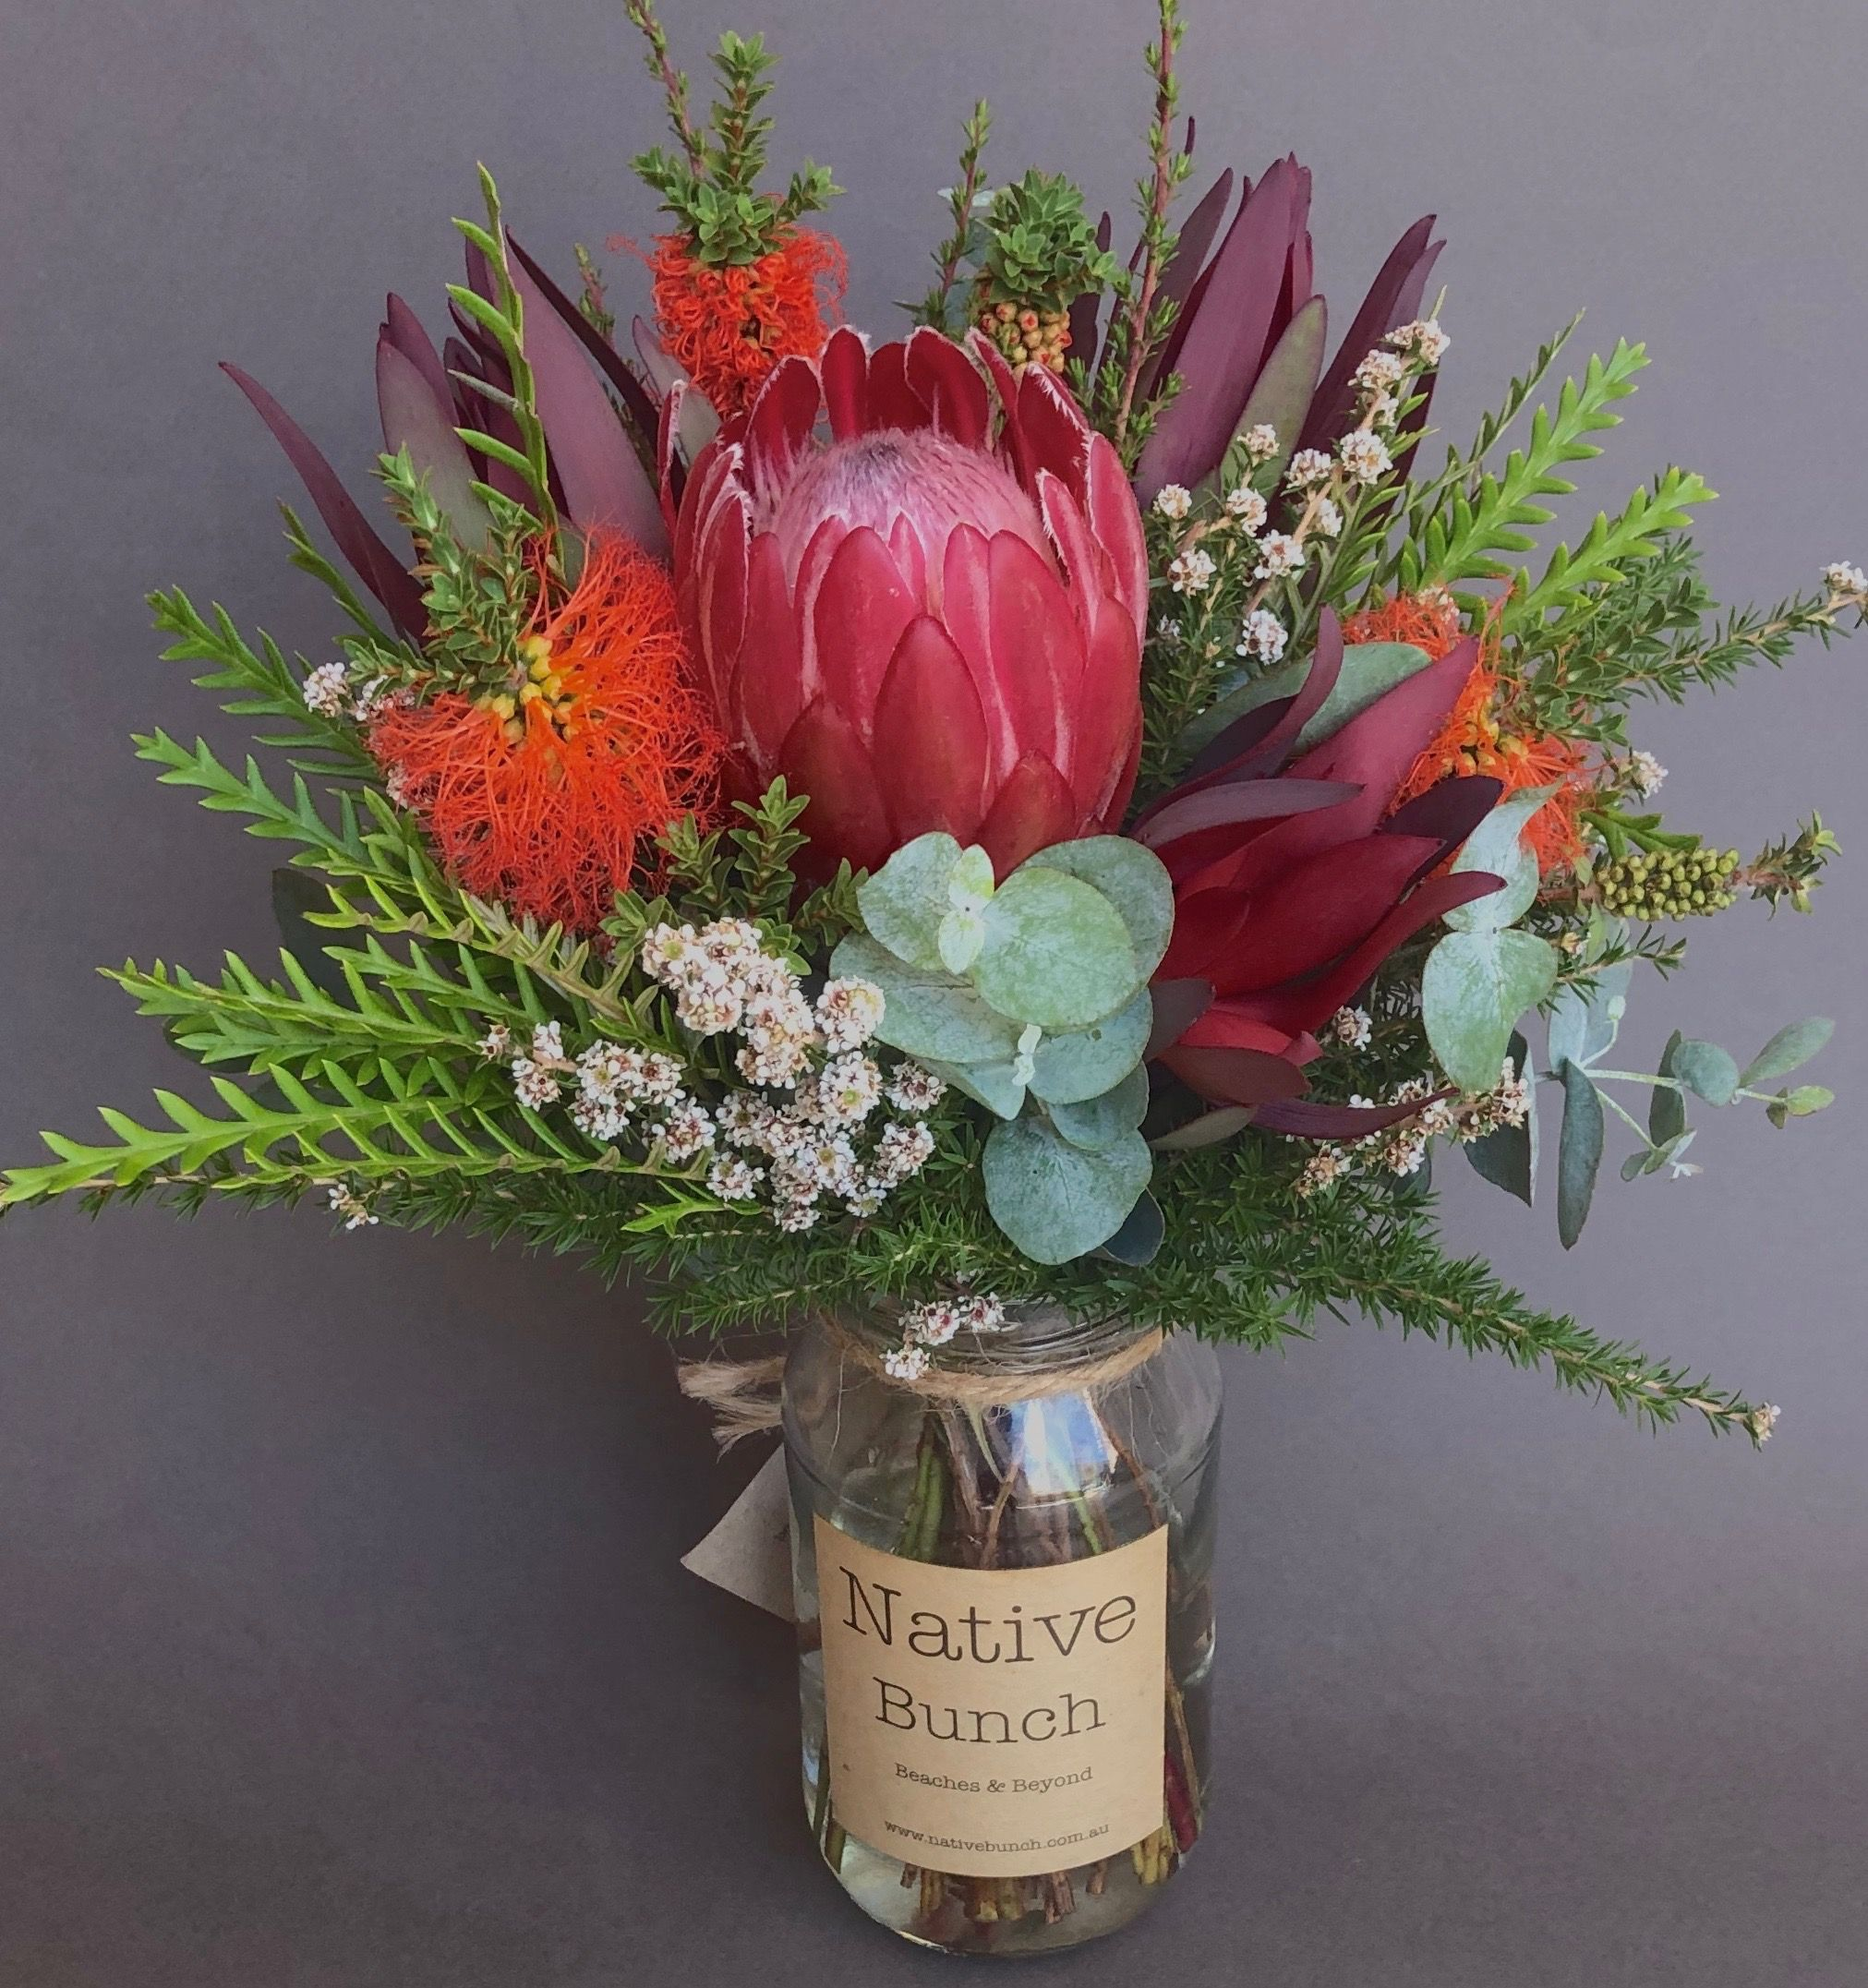 Sydney native flower delivery. This week's posy Protea